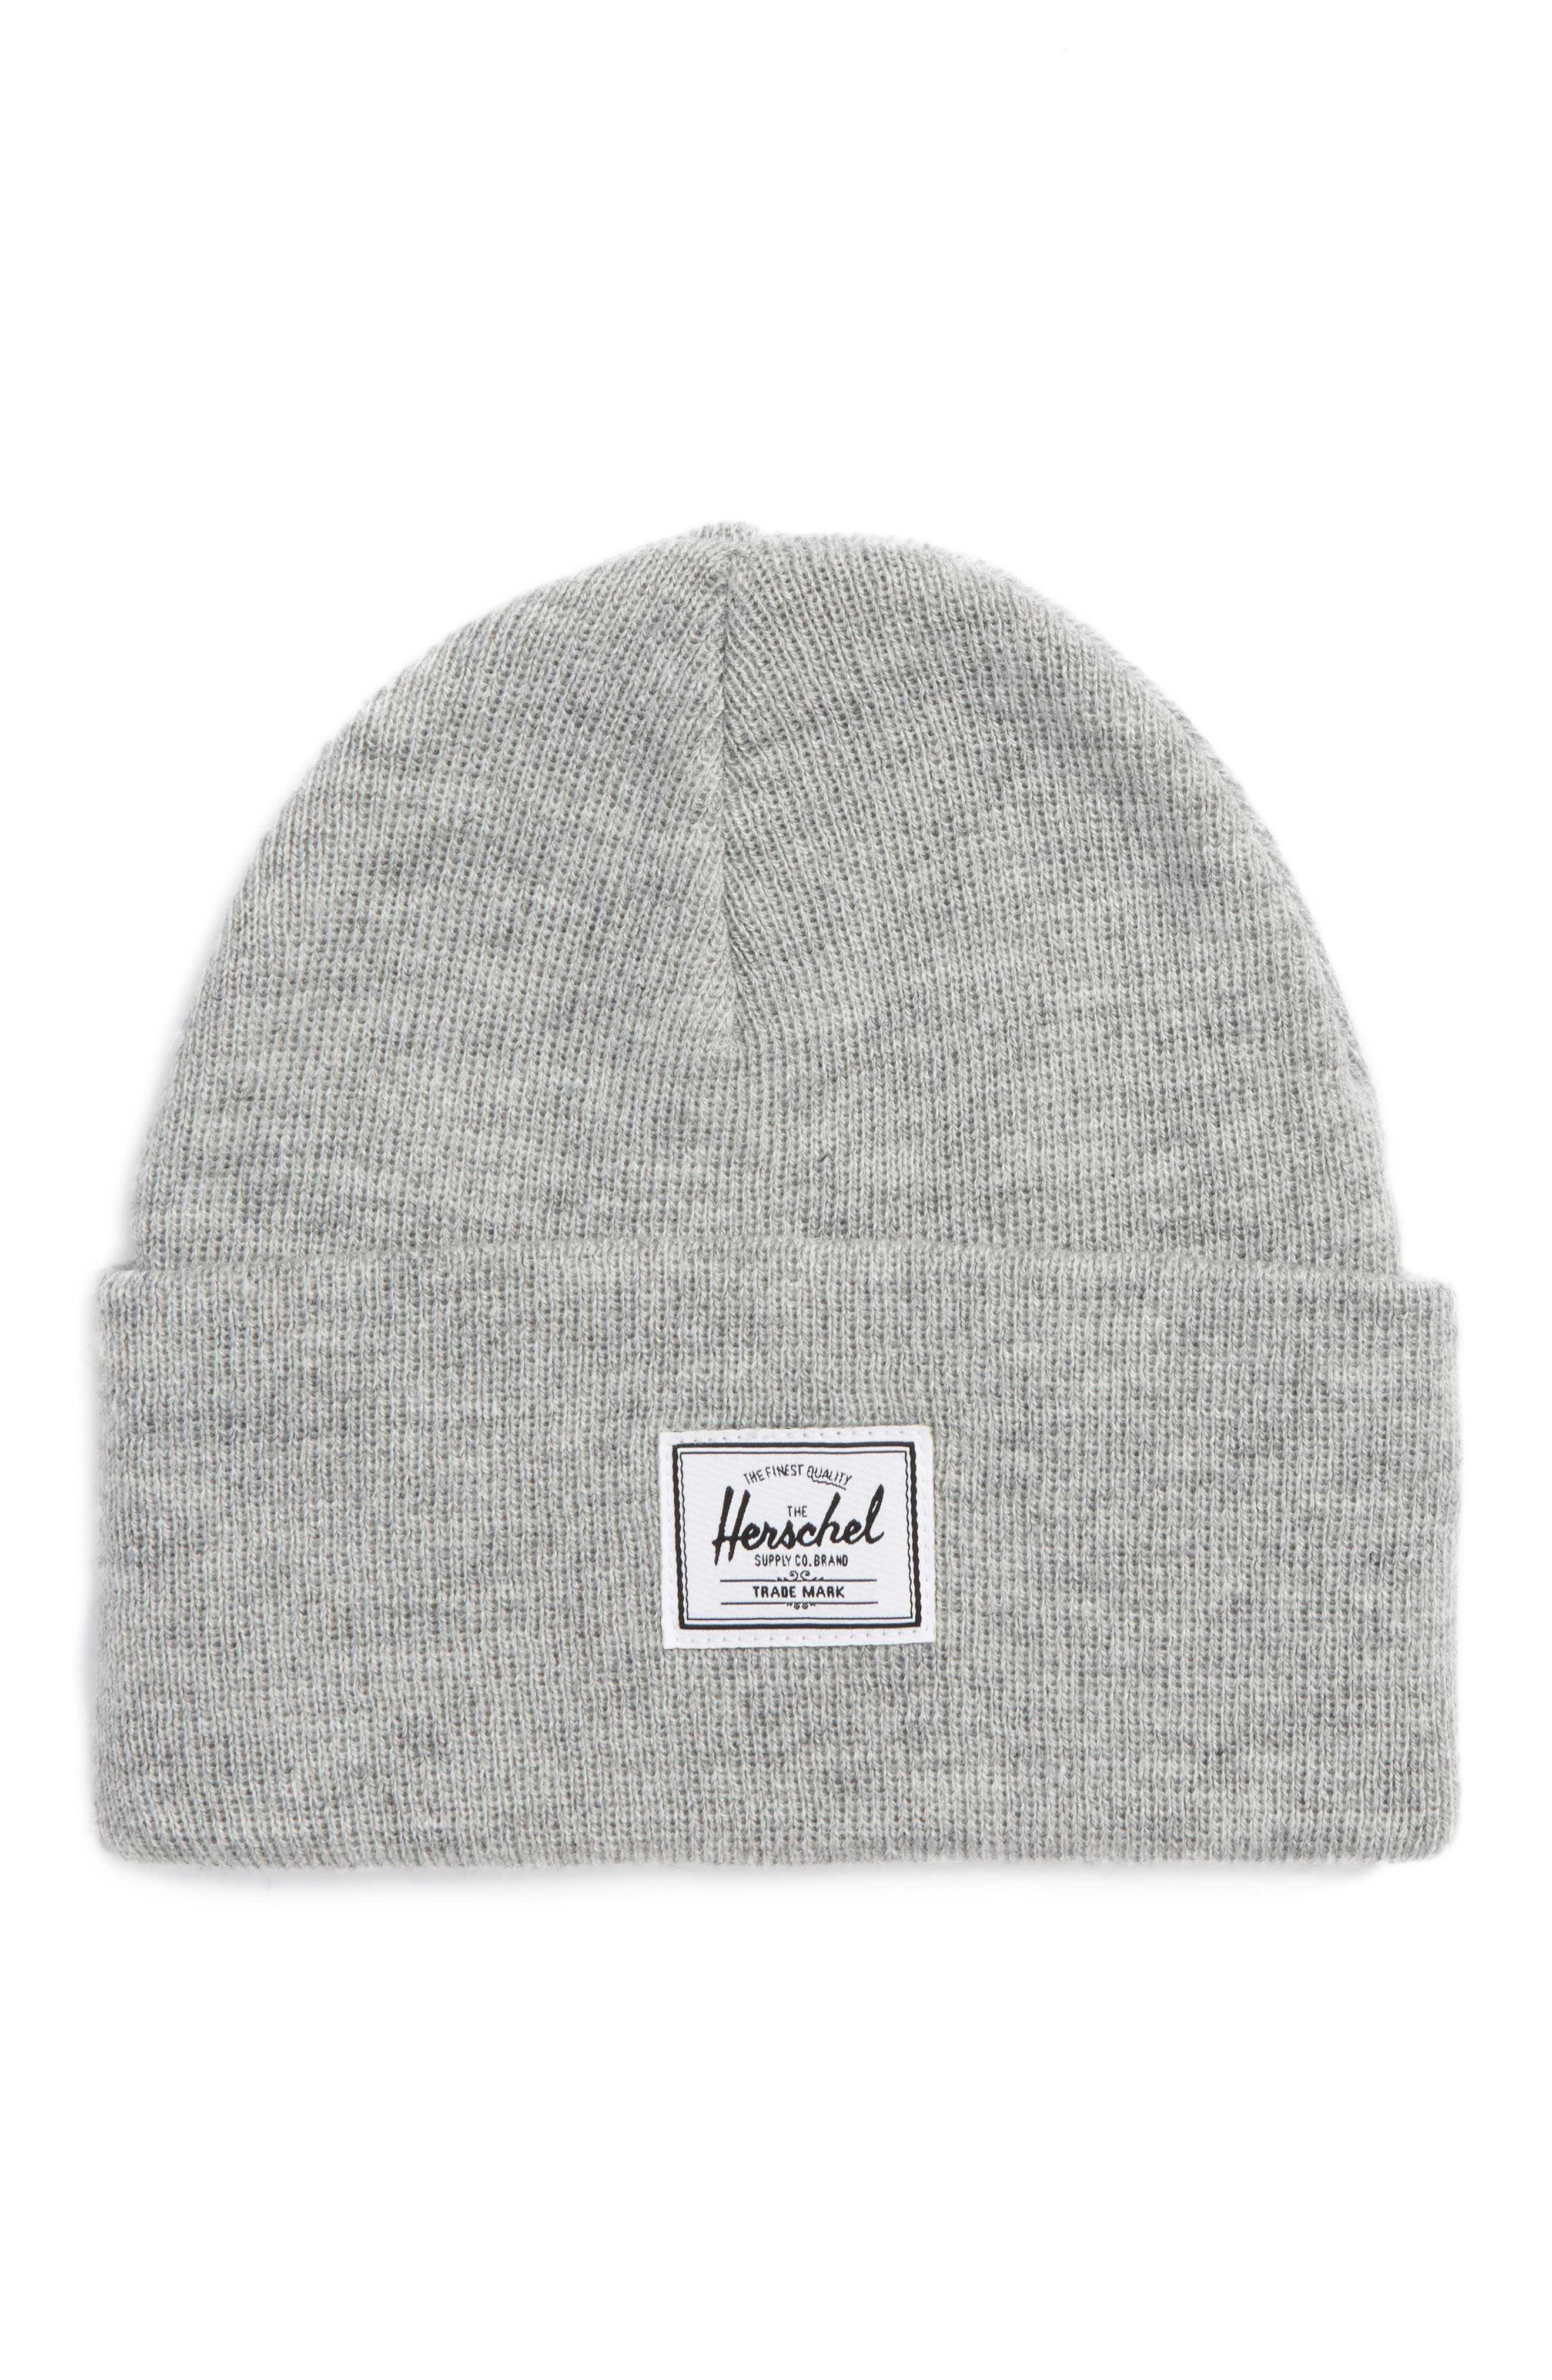 Alternate Image 1 Selected - Herschel Supply Co. Elmer Knit Beanie